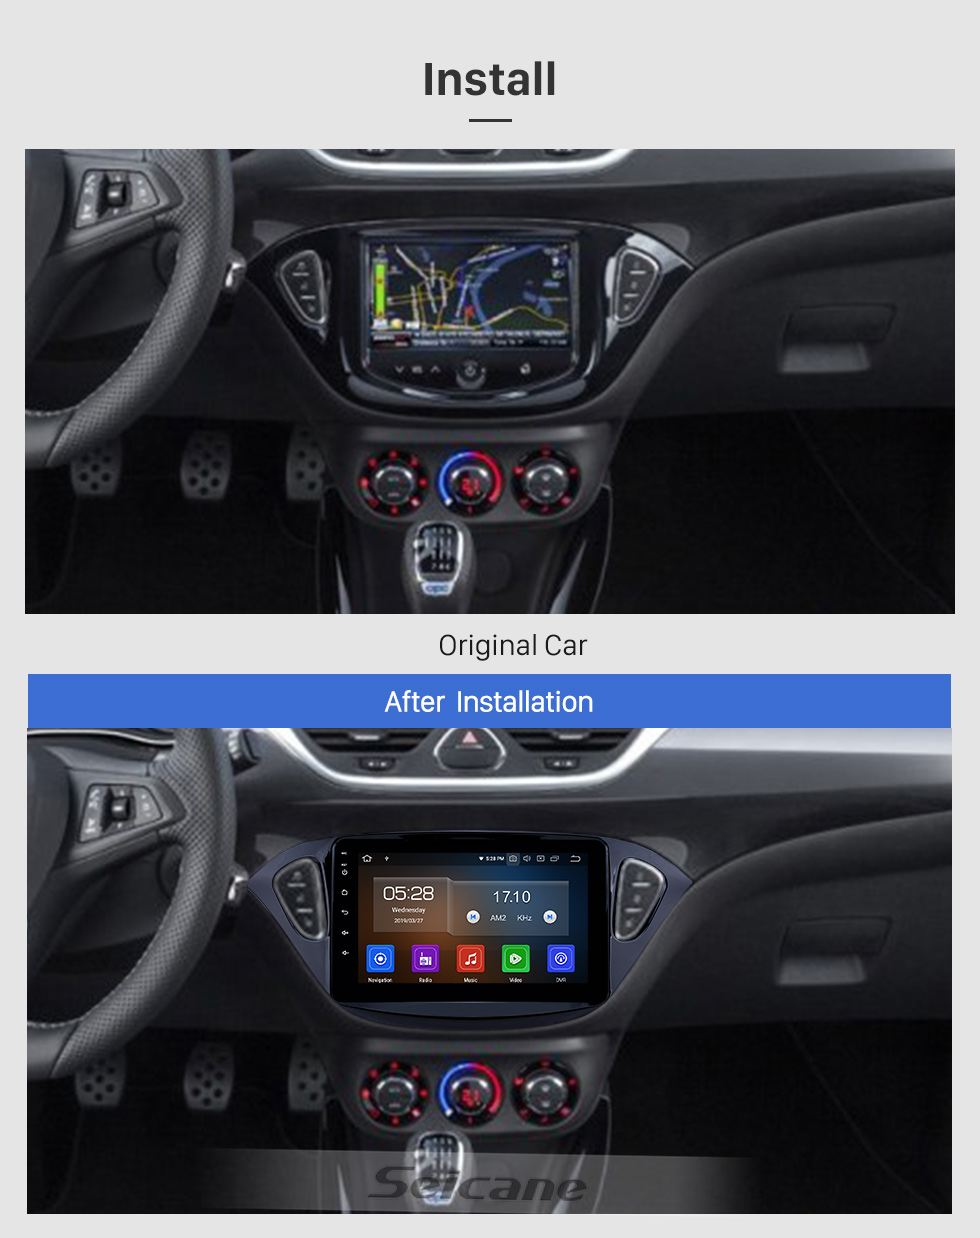 Seicane 8 inch Android 9.0 Radio for 2015-2019 Opel Corsa/2013-2016 Opel Adam Bluetooth Wifi HD Touchscreen GPS Navigation Carplay USB support TPMS